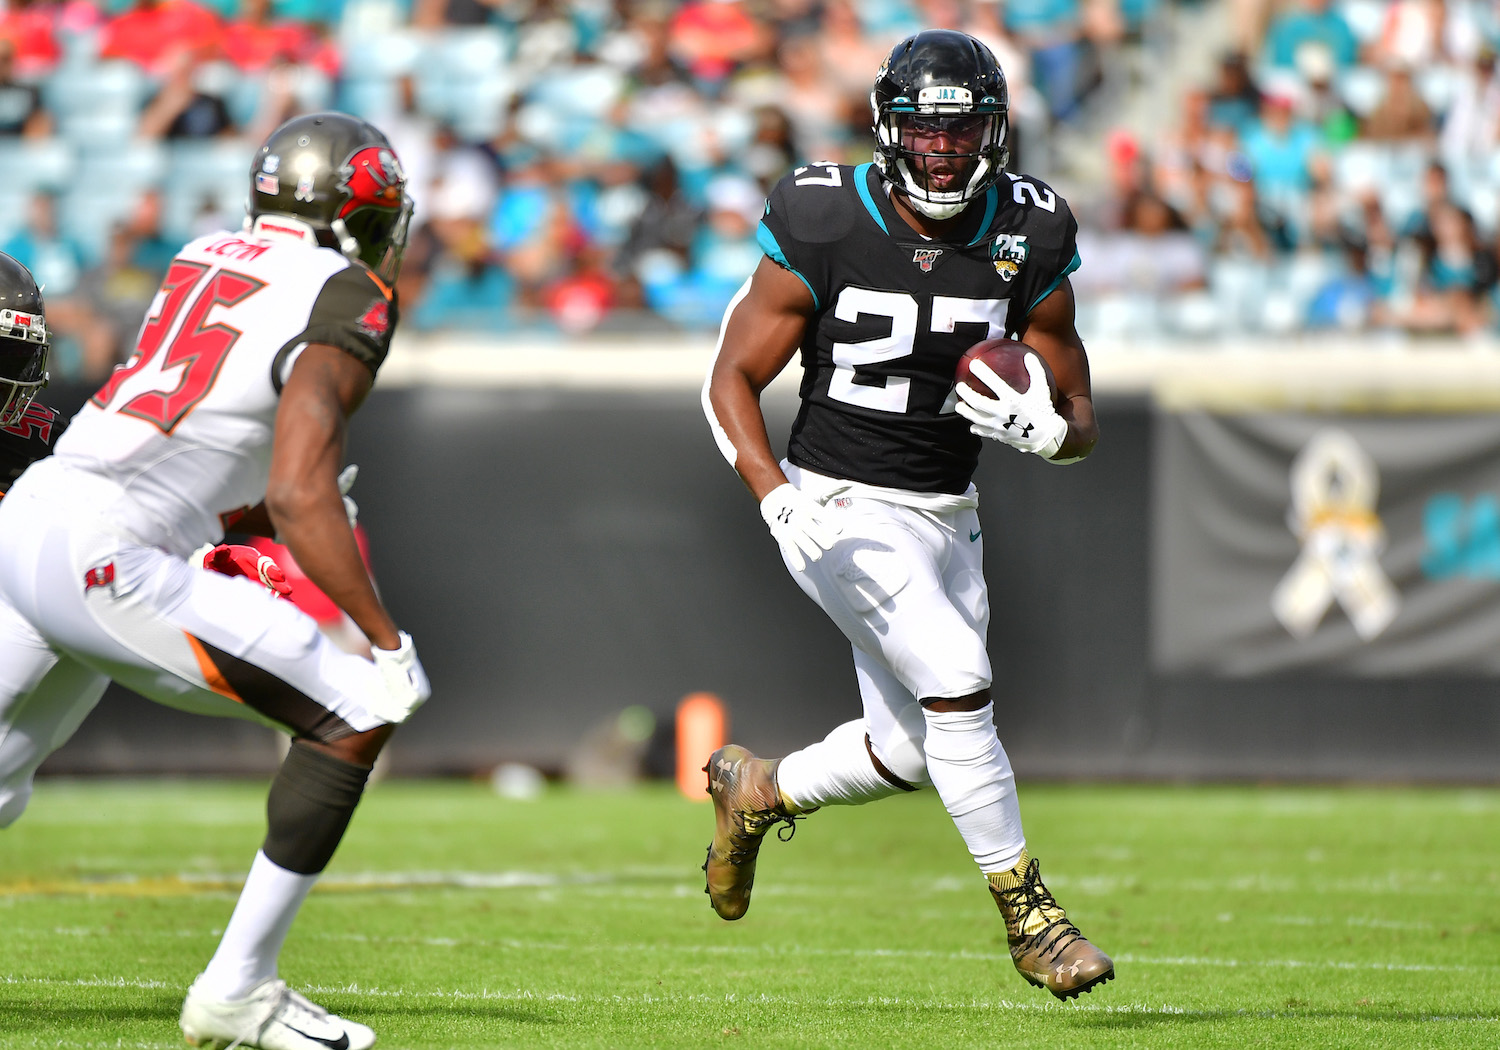 Leonard Fournette #27 of the Jacksonville Jaguars